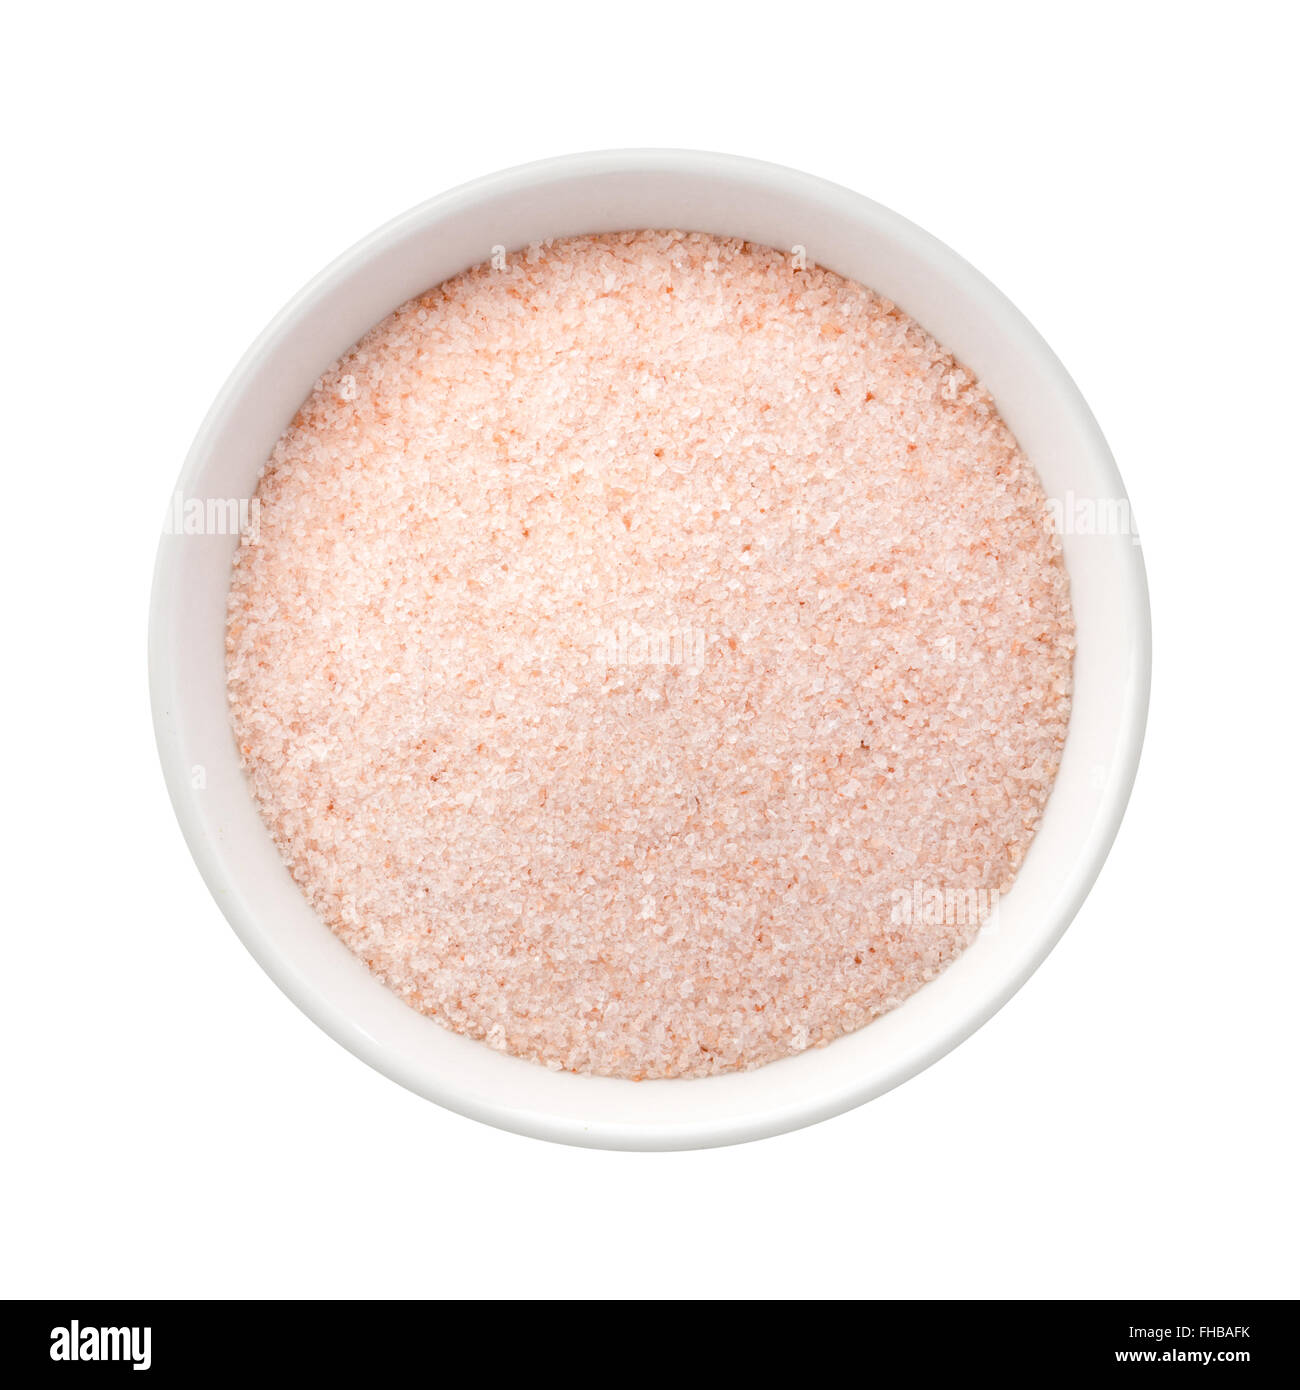 Fine Himalayan Pink Salt in a Ceramic Bowl. The image is a cut out, isolated on a white background. - Stock Image